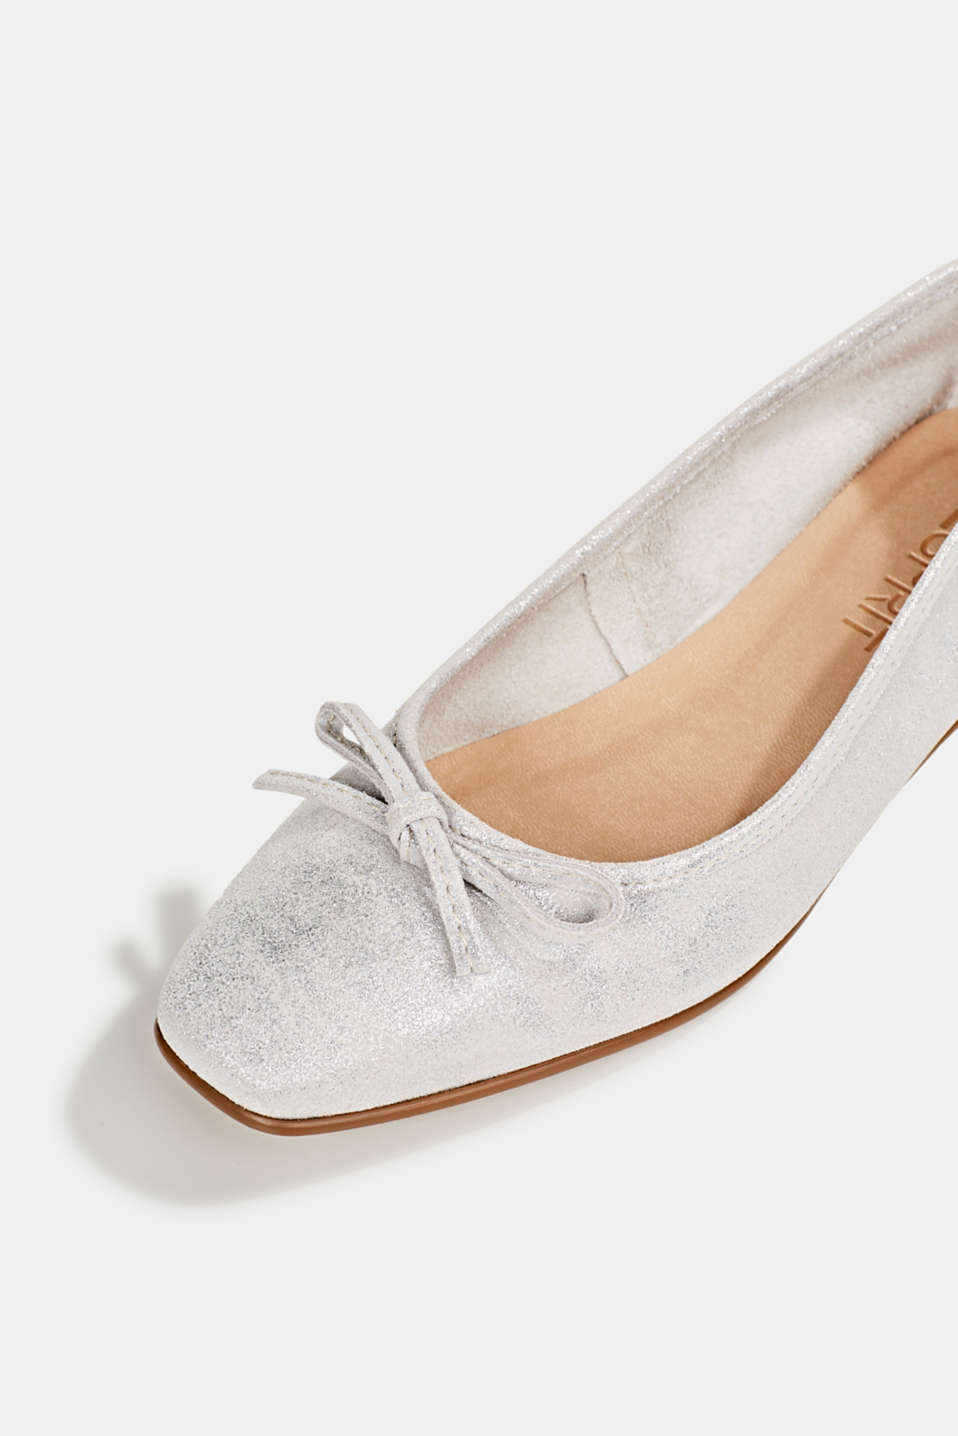 Leather ballerinas with bows, SILVER, detail image number 4